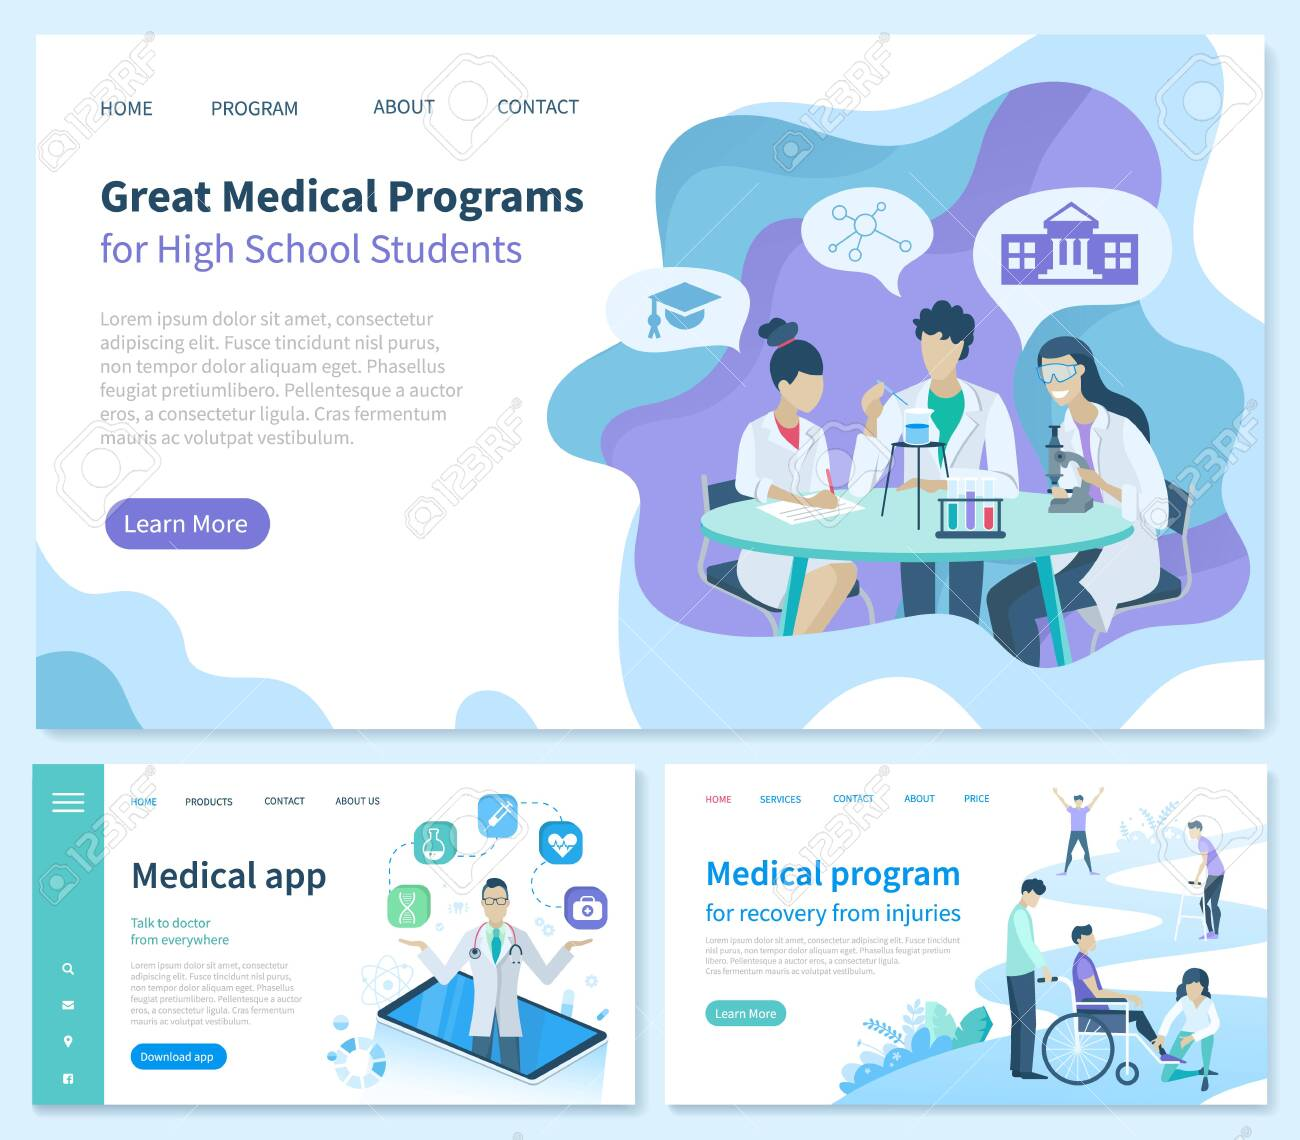 Medical program for recovery from injuries vector. Great High School students application, smartphone with possibilities. Medicine workers in gowns. Website or webpage template landing page flat style - 134867780